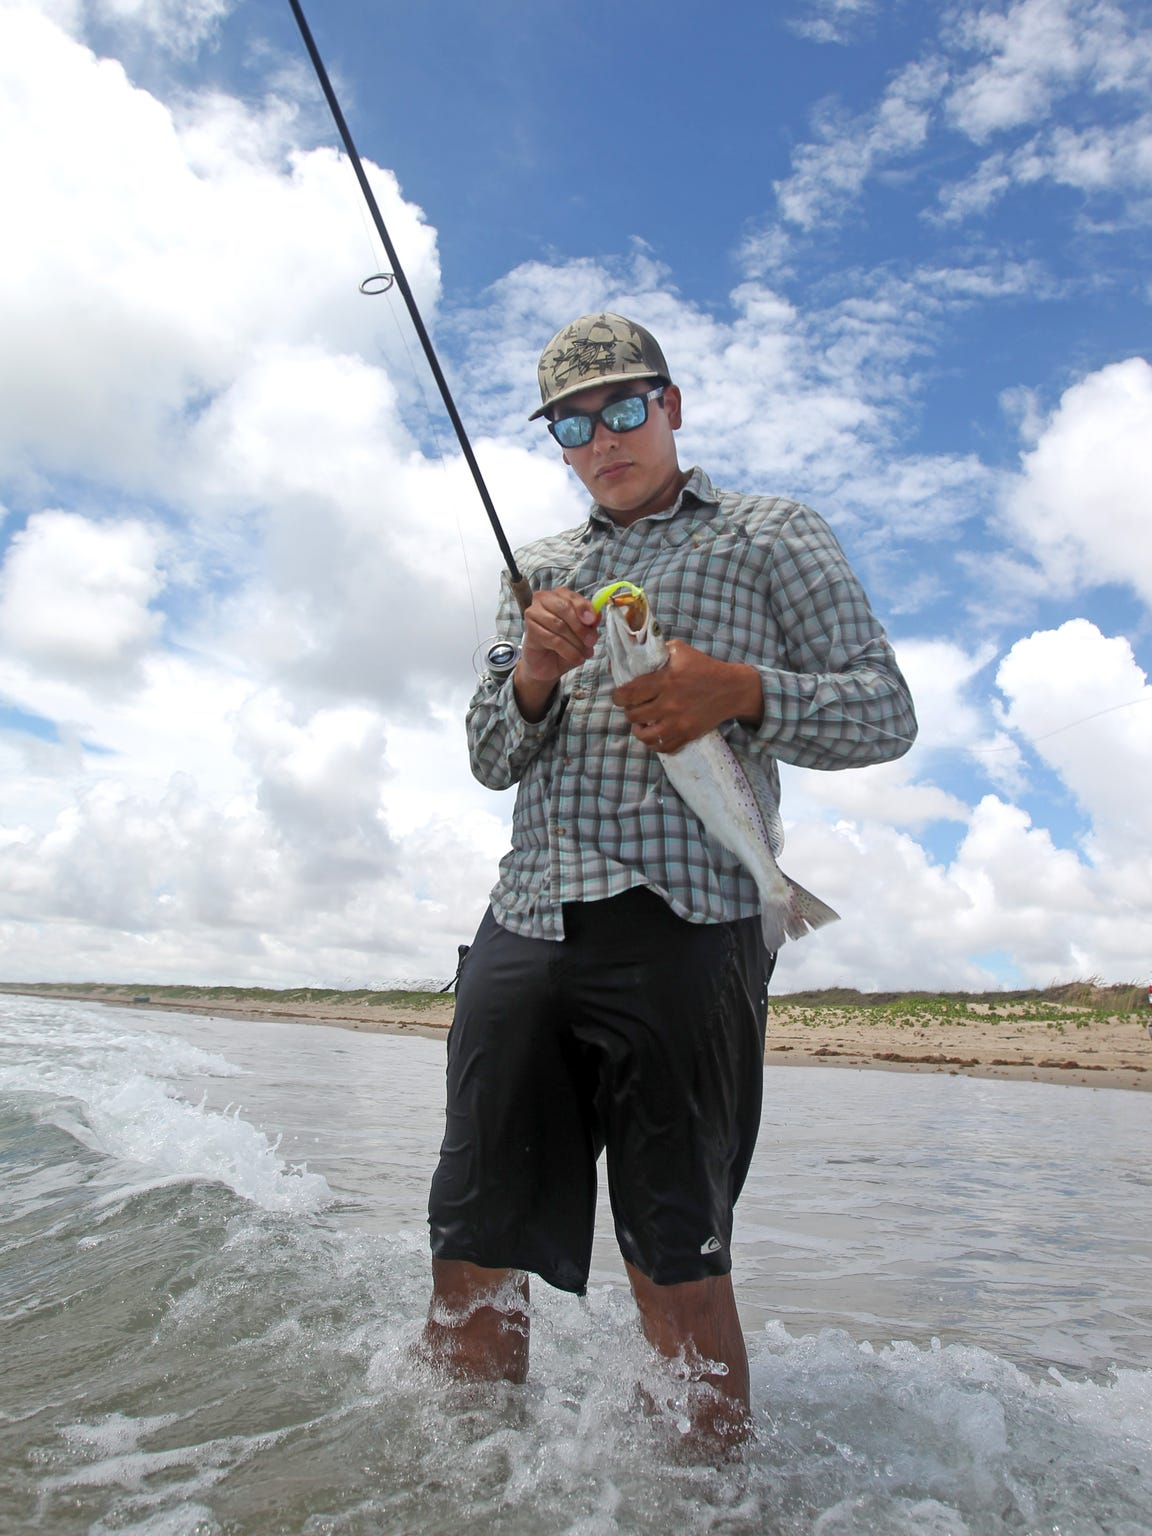 A couple of Coastal Bend guides offer surf-fishing trips along Padre Island National Seashore. They provide all equipment, which include a vehicle with four-wheel drive.